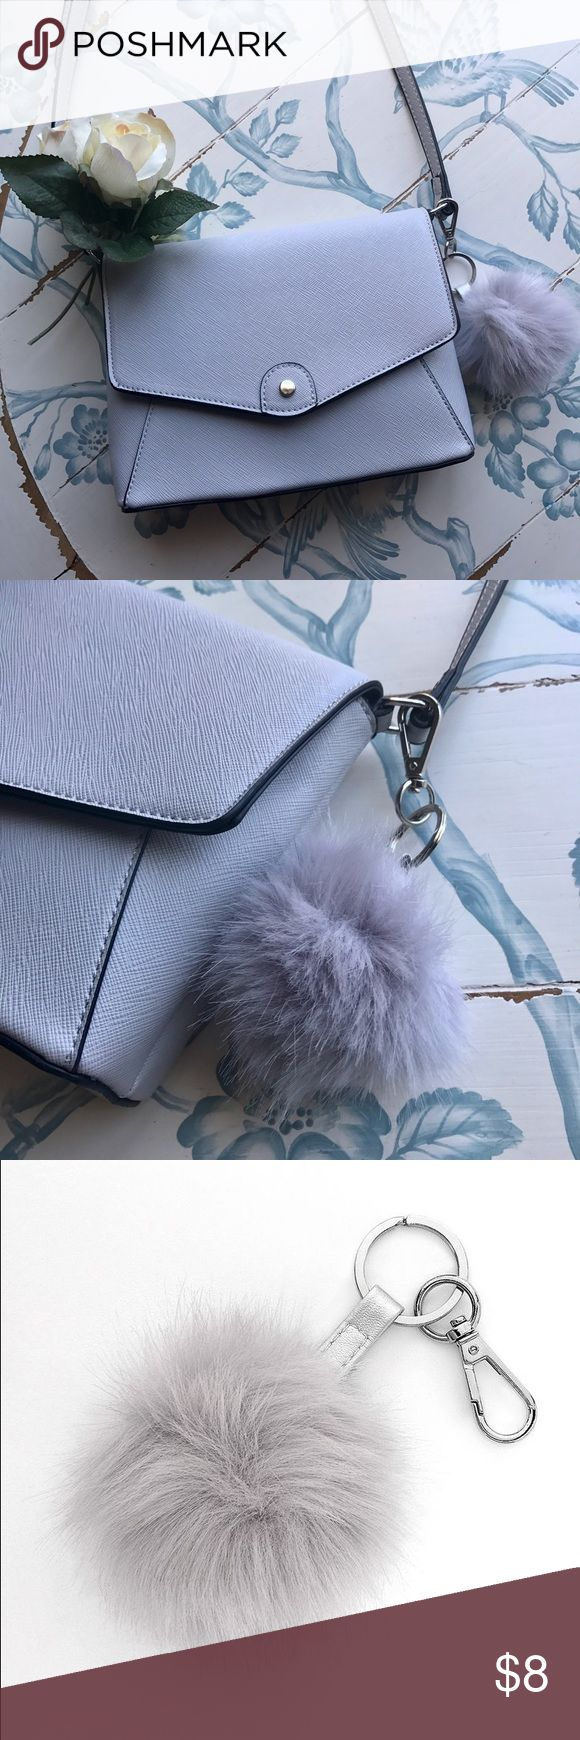 LC Lauren Conrad Faux Fur Keychain Perfect on a purse or your set of keys. The color is a purple grey that pairs well with a neutral purse for a pop of color. LC Lauren Conrad Other